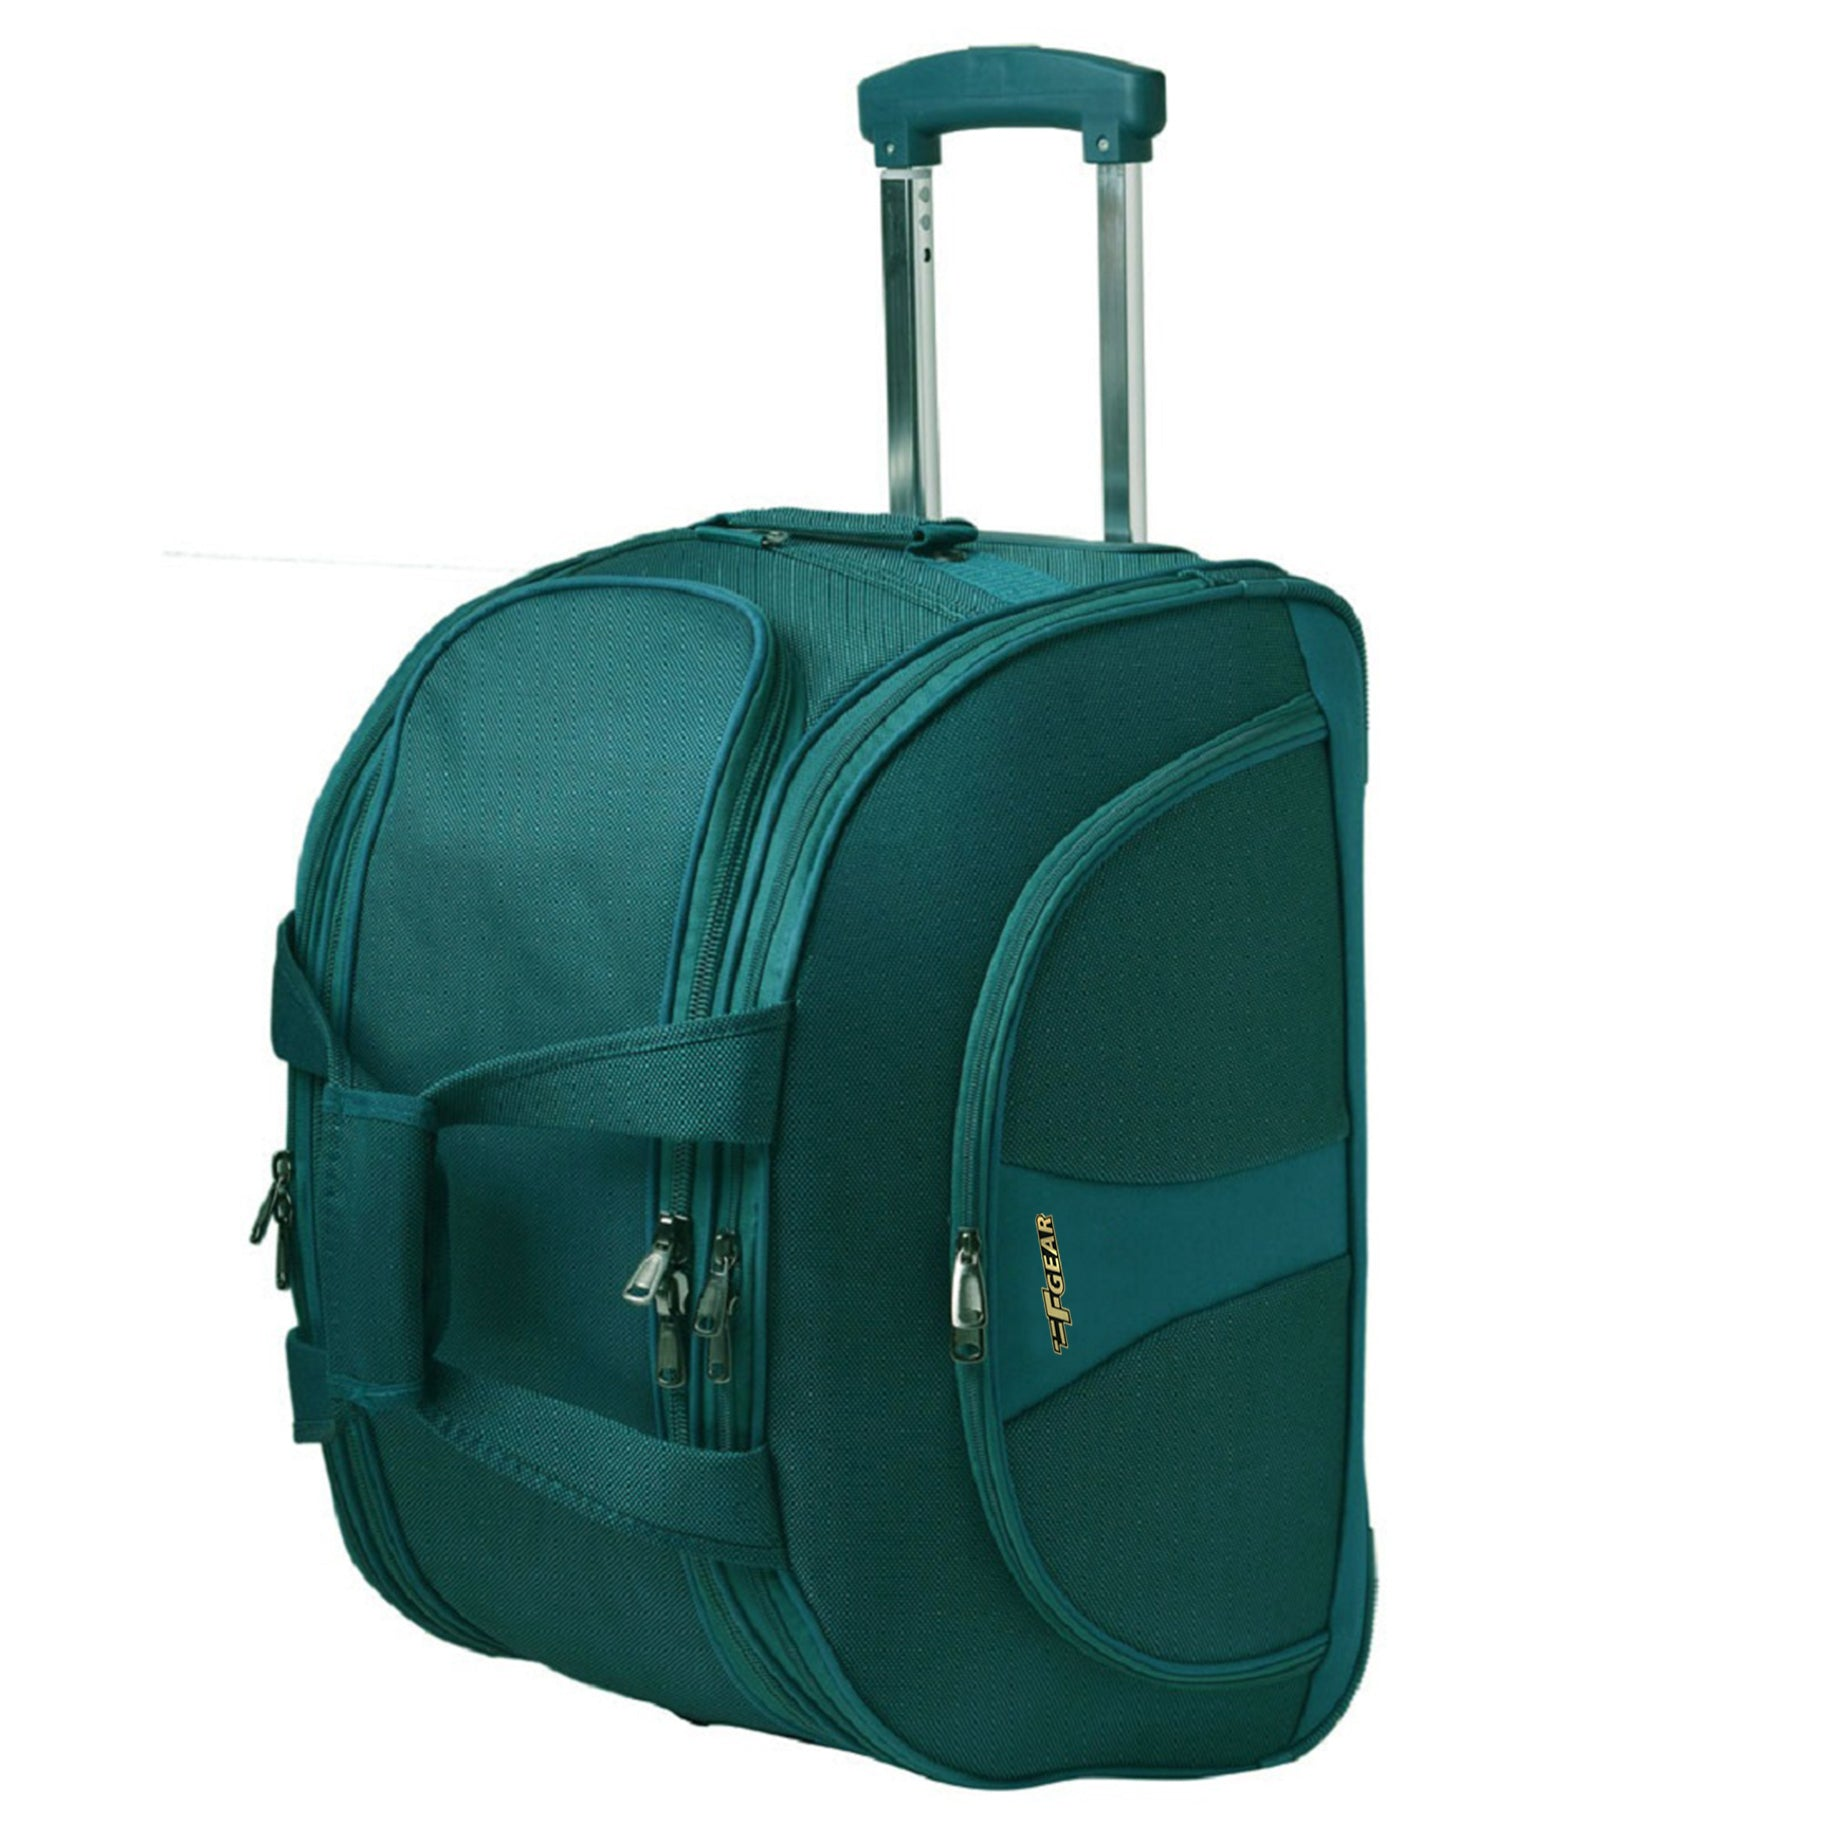 F Gear Cooter Polyester Ocean Blue Large 76 Liter Travel Duffle bag-24 inch